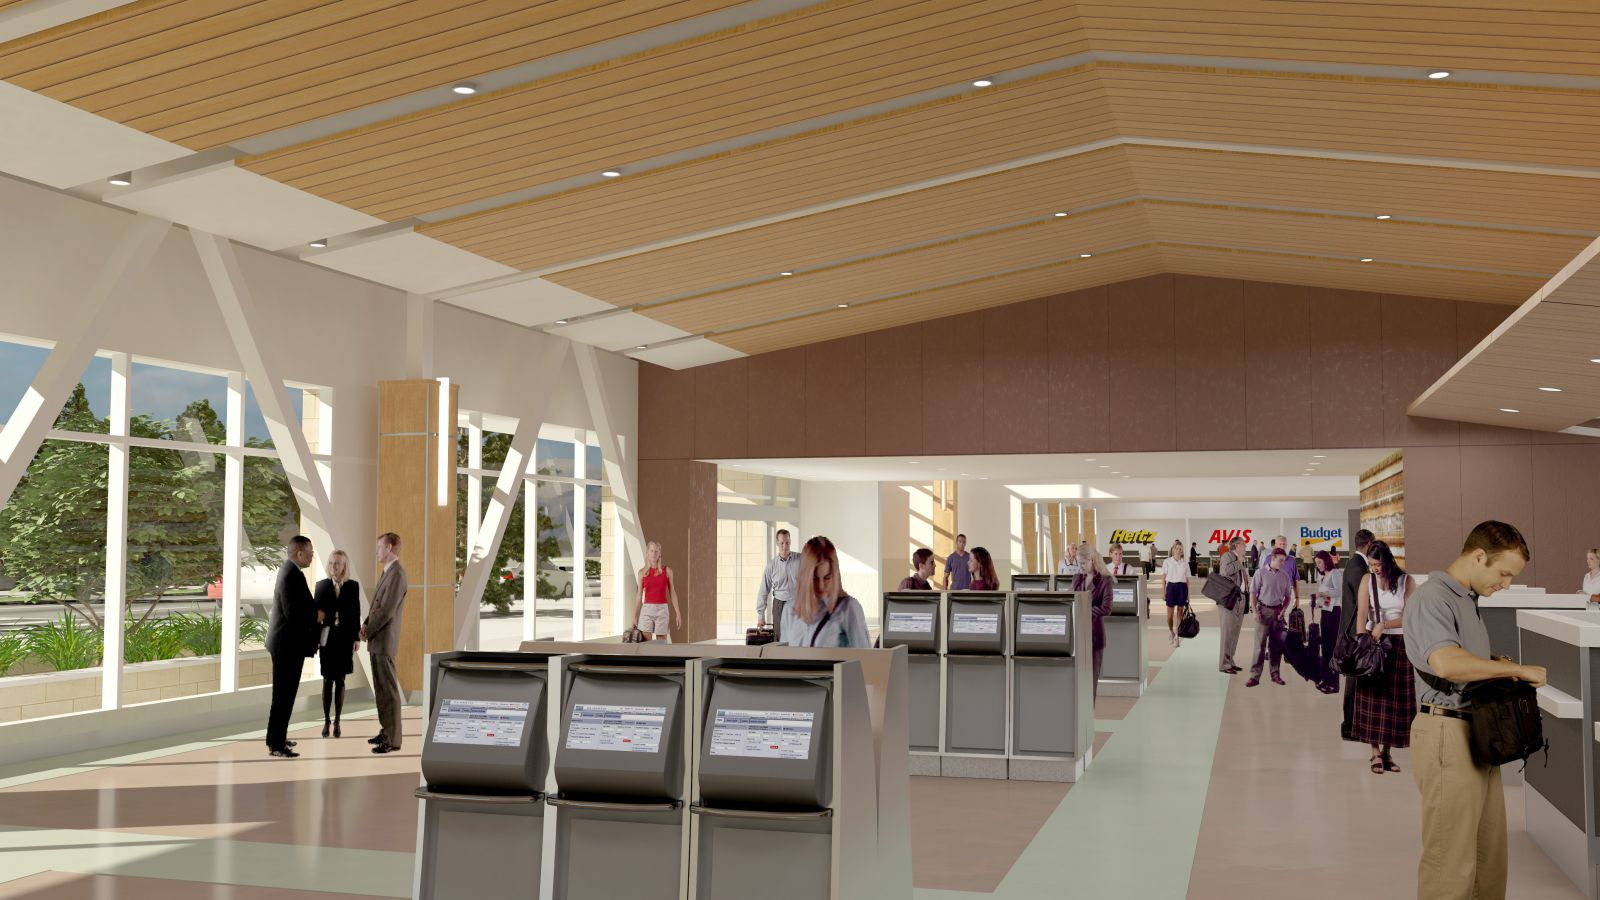 Mock up of inside the terminal